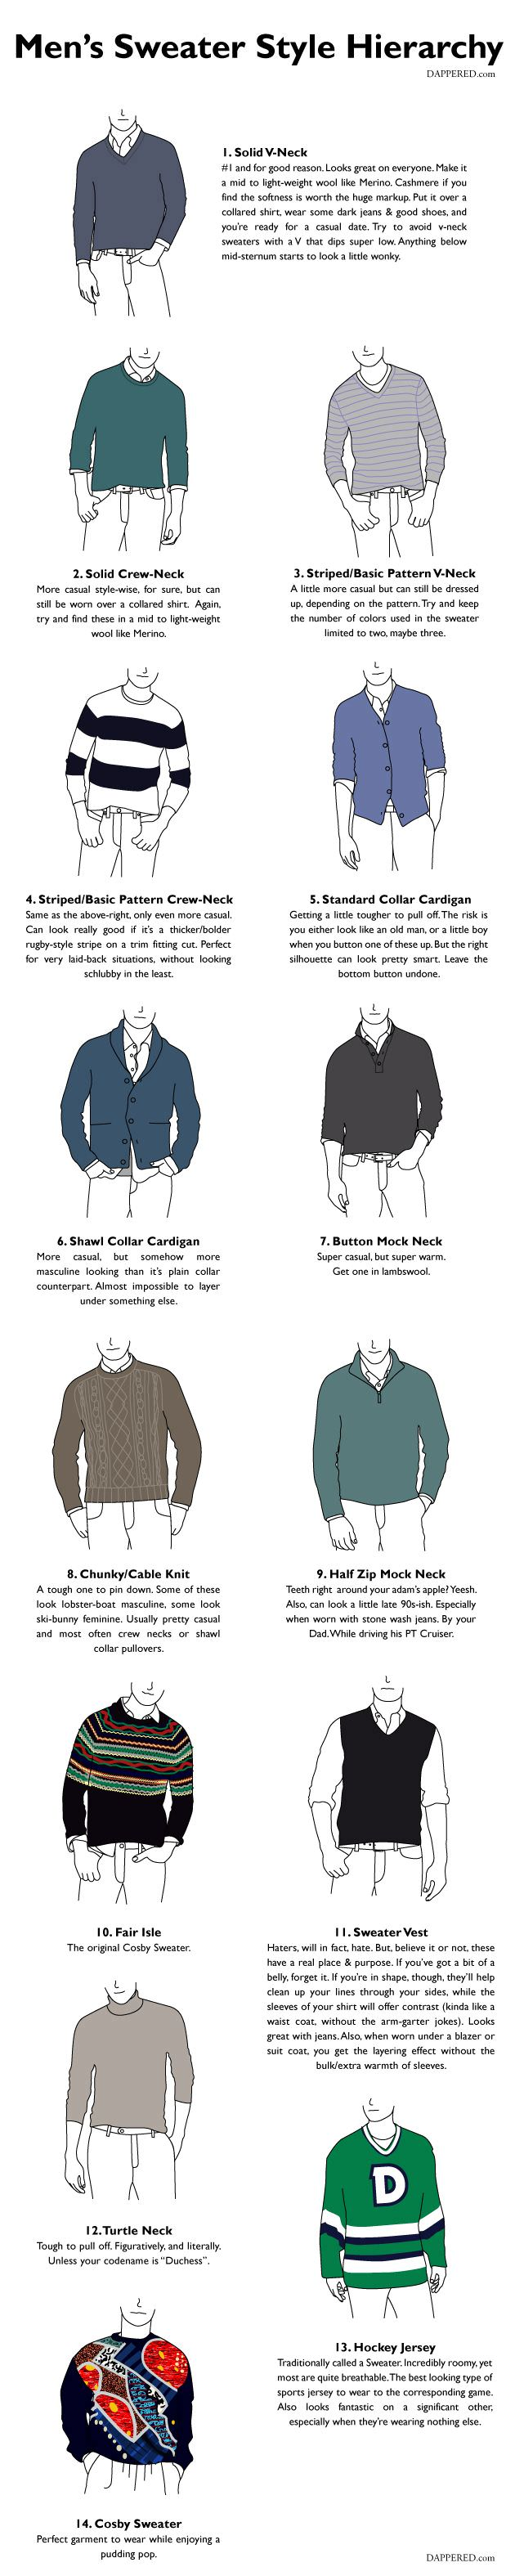 mens-sweater-style, how to wear different types of sweaters